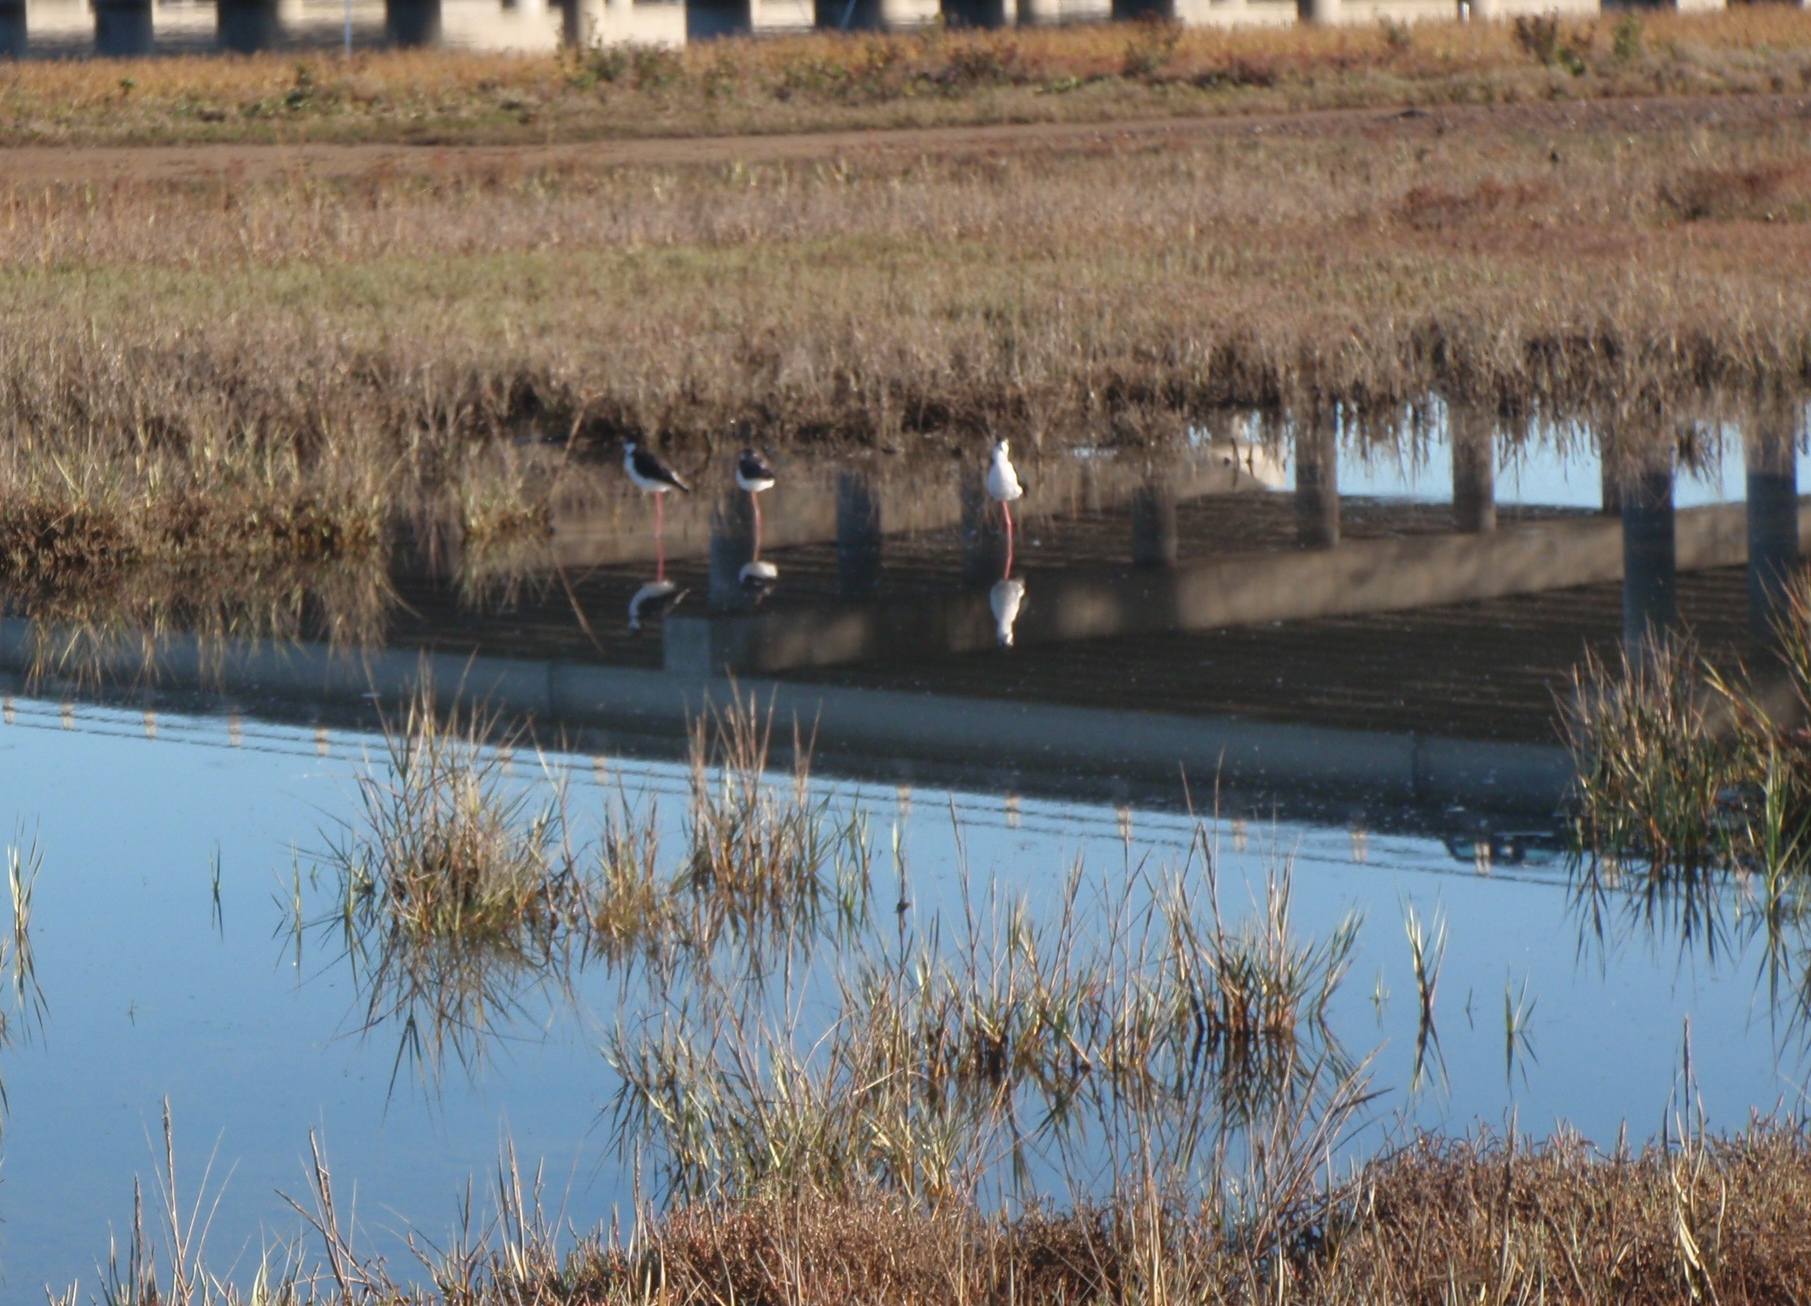 Shorebirds in the wetlands of San Francisco Bay